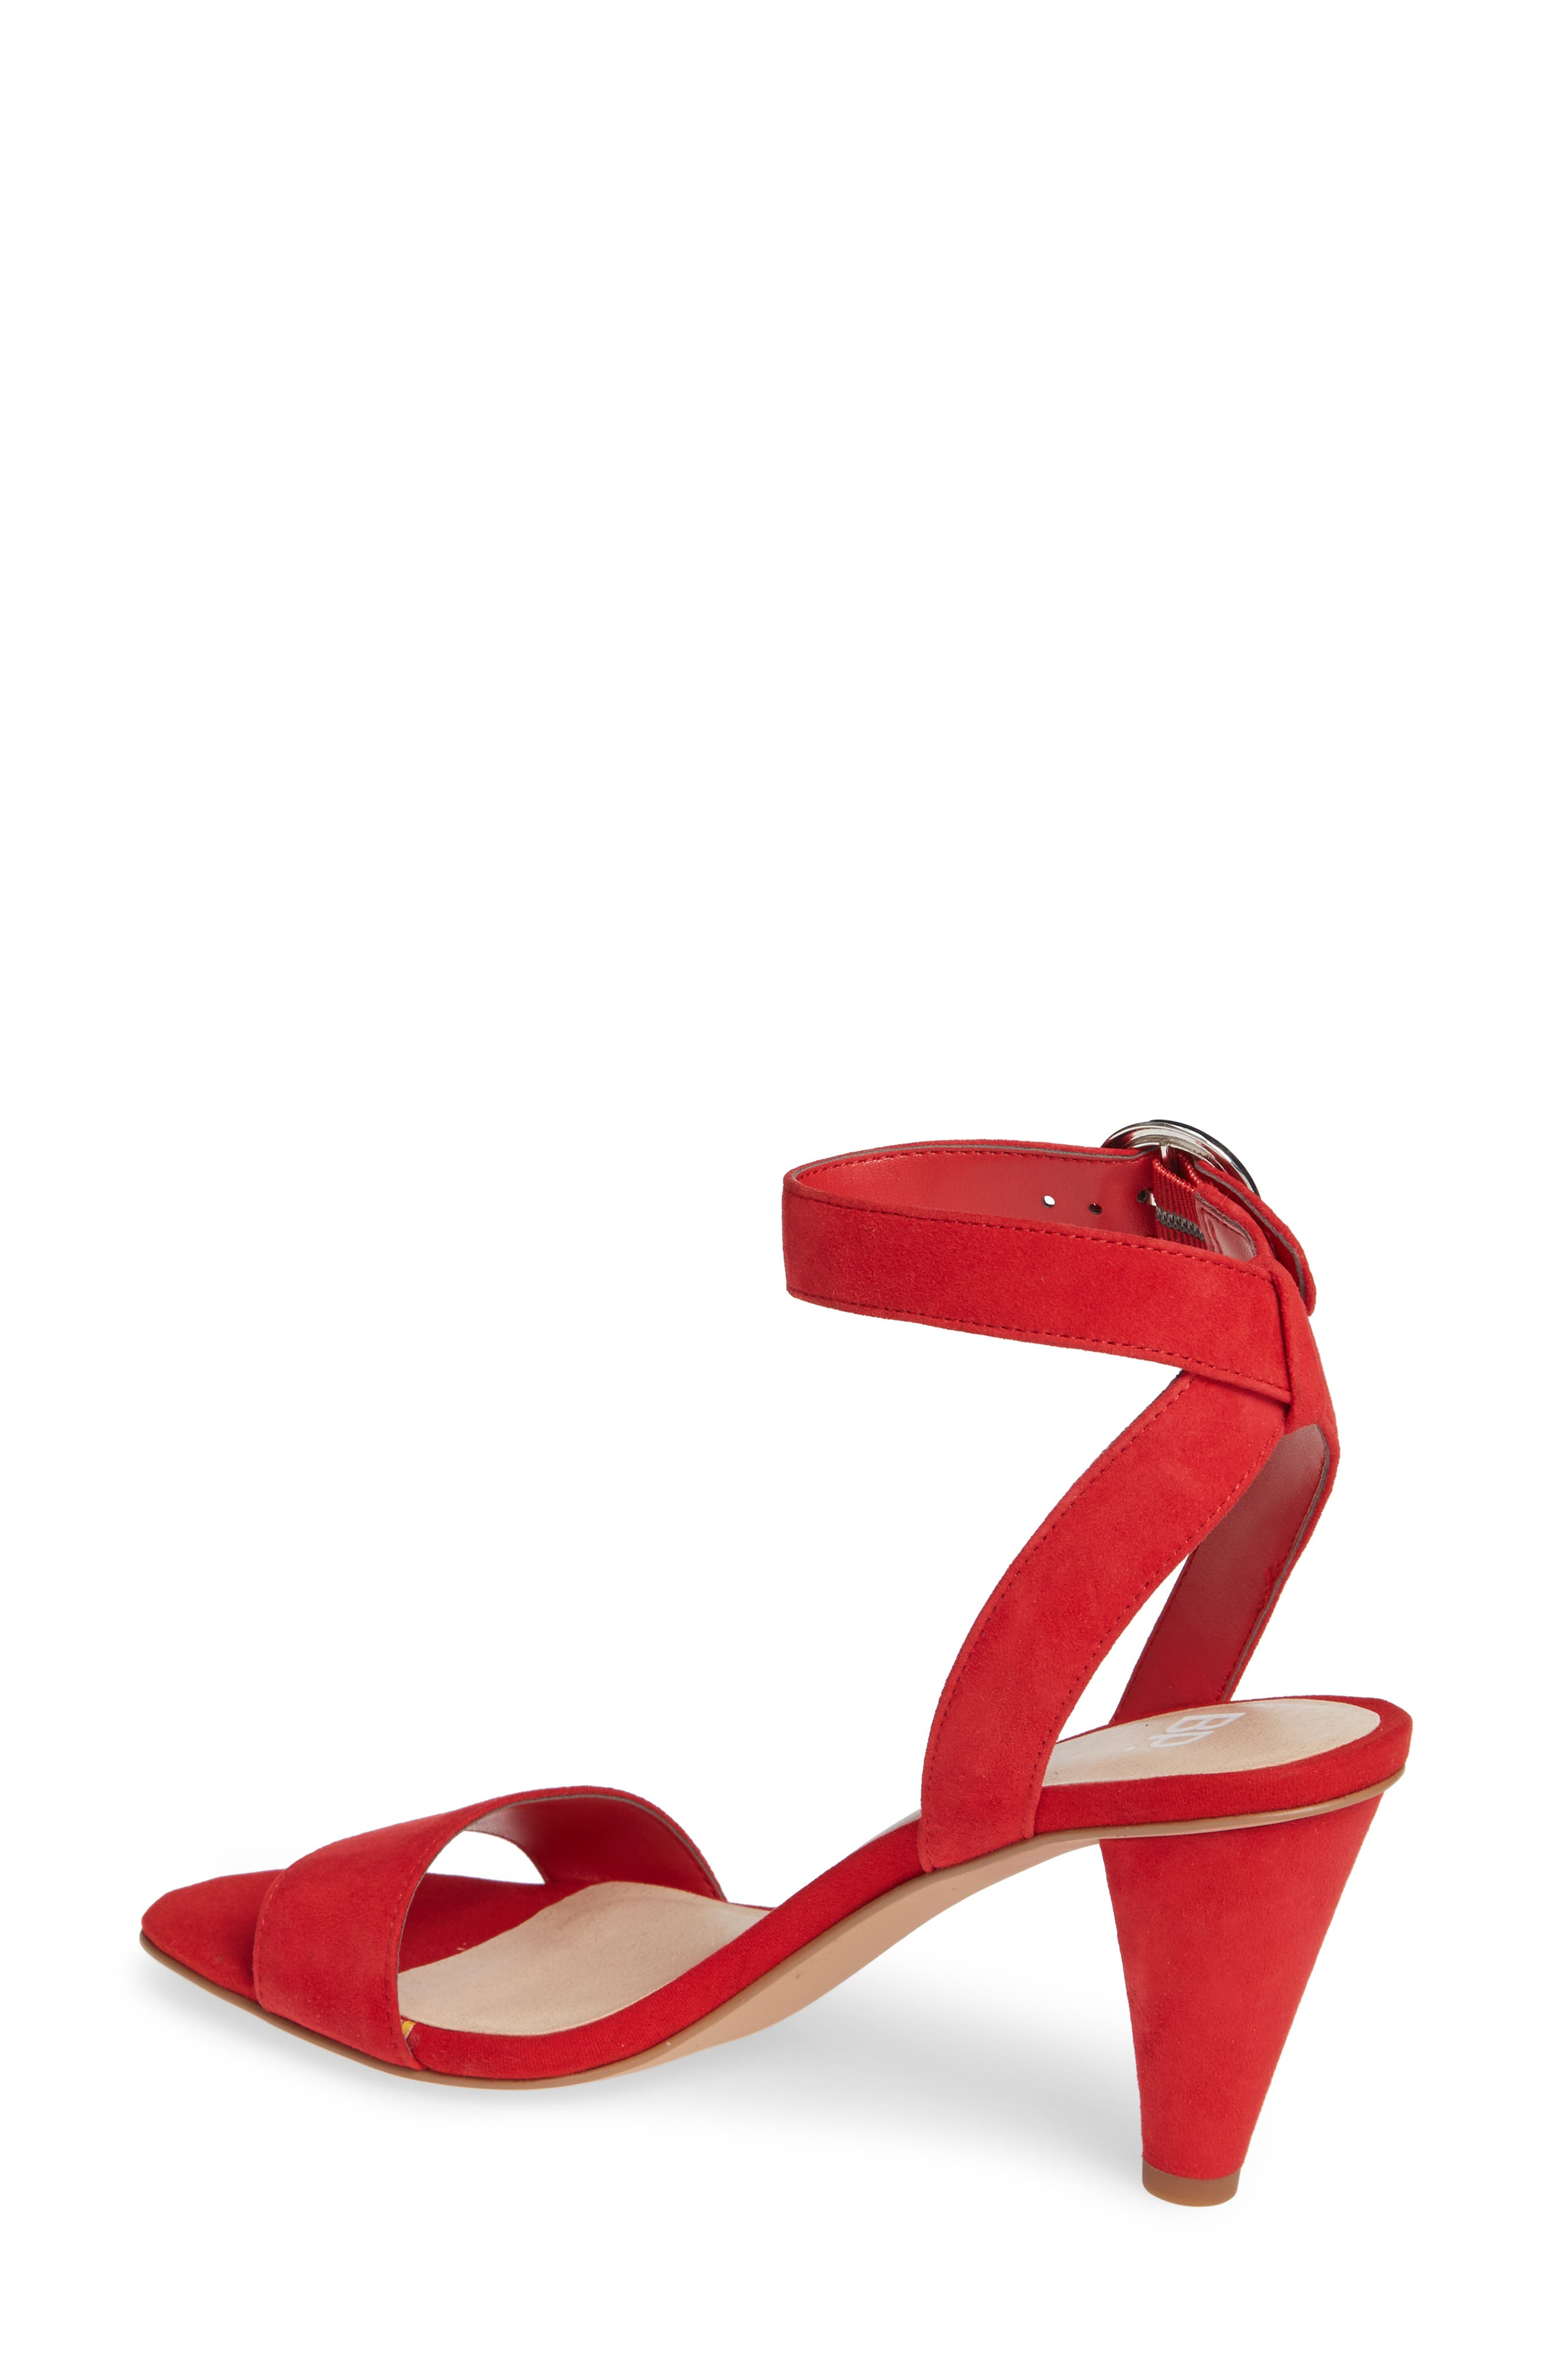 Cleo Cone Heel Sandal,                             Alternate thumbnail 2, color,                             RED SUEDE